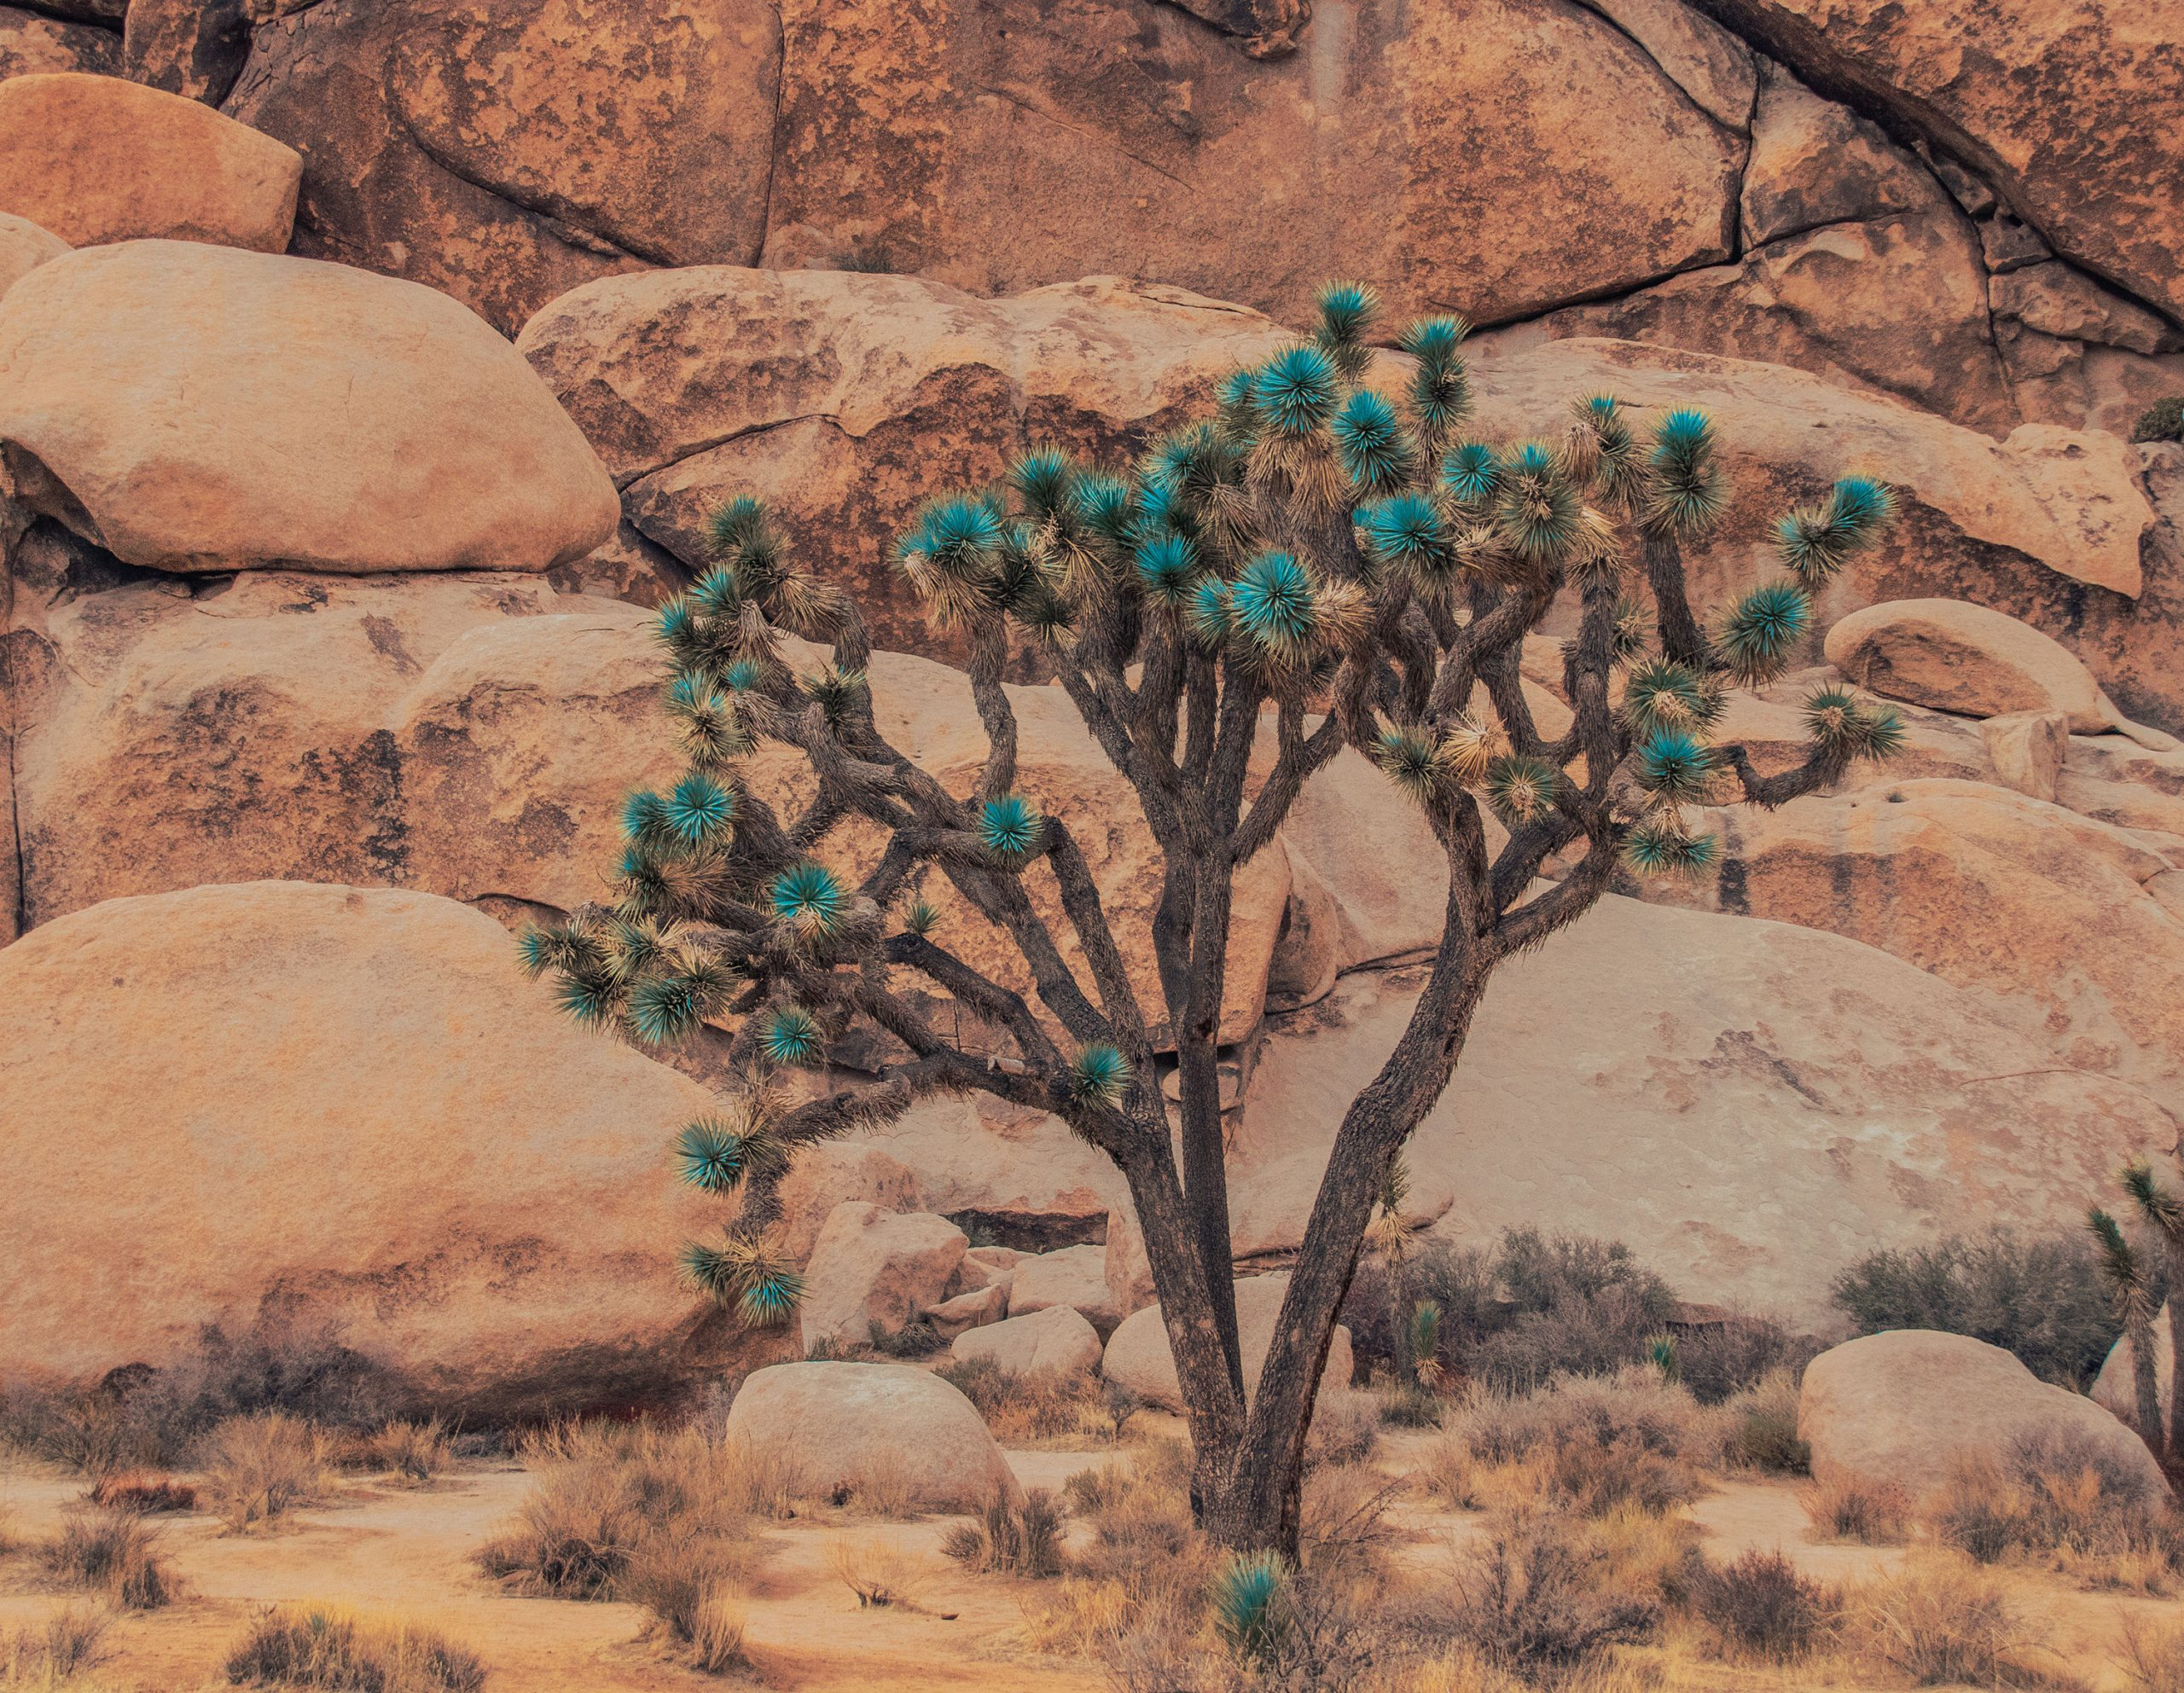 Joshua Tree with Turquoise Green leaves